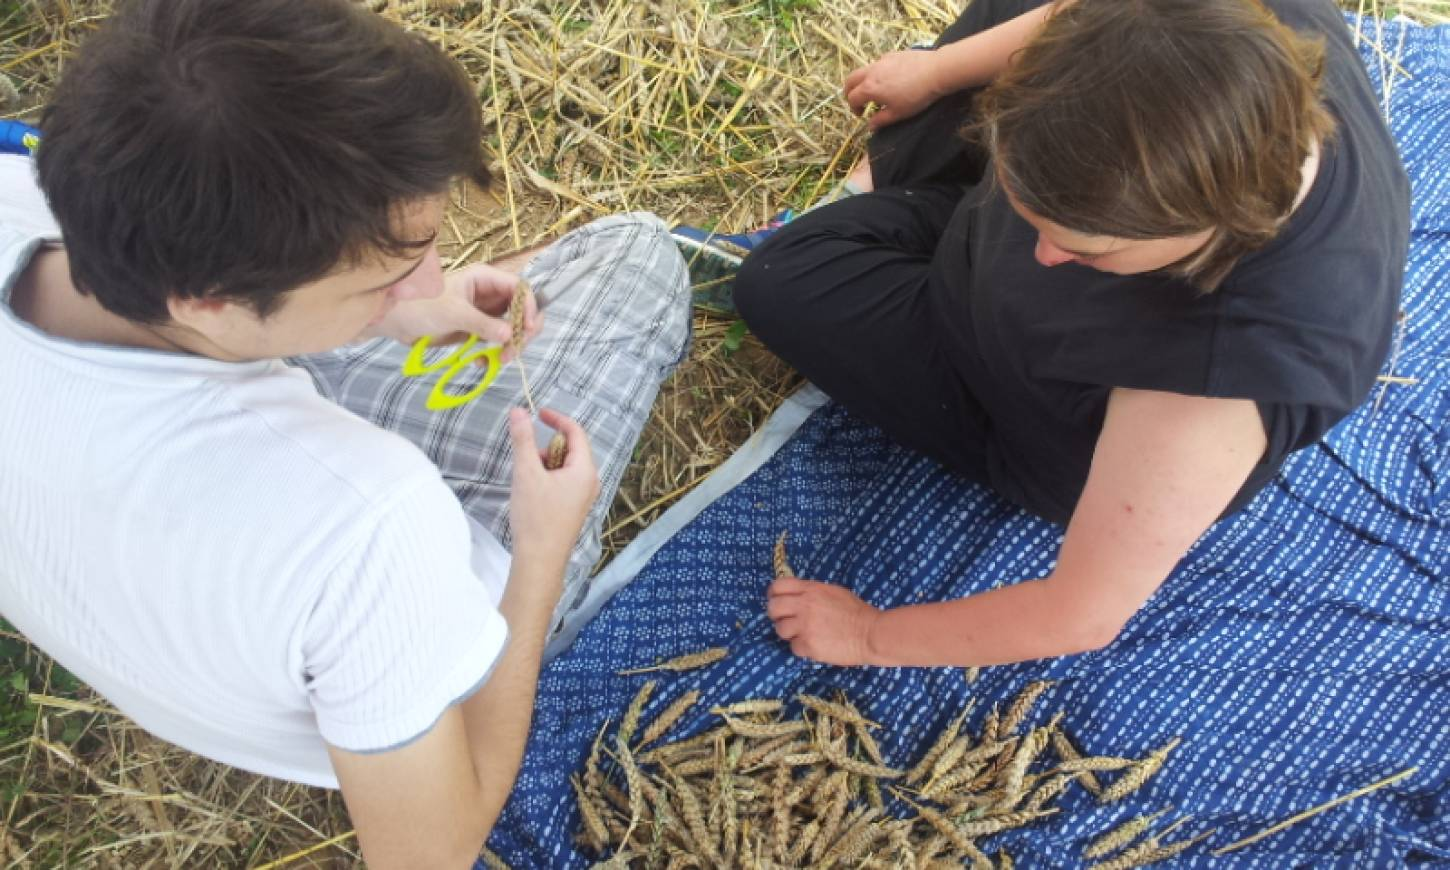 WoWo manual harvest pic: Ann Bodkin - sorting - 12:23pm&nbsp;8<sup>th</sup>&nbsp;Aug.&nbsp;'15